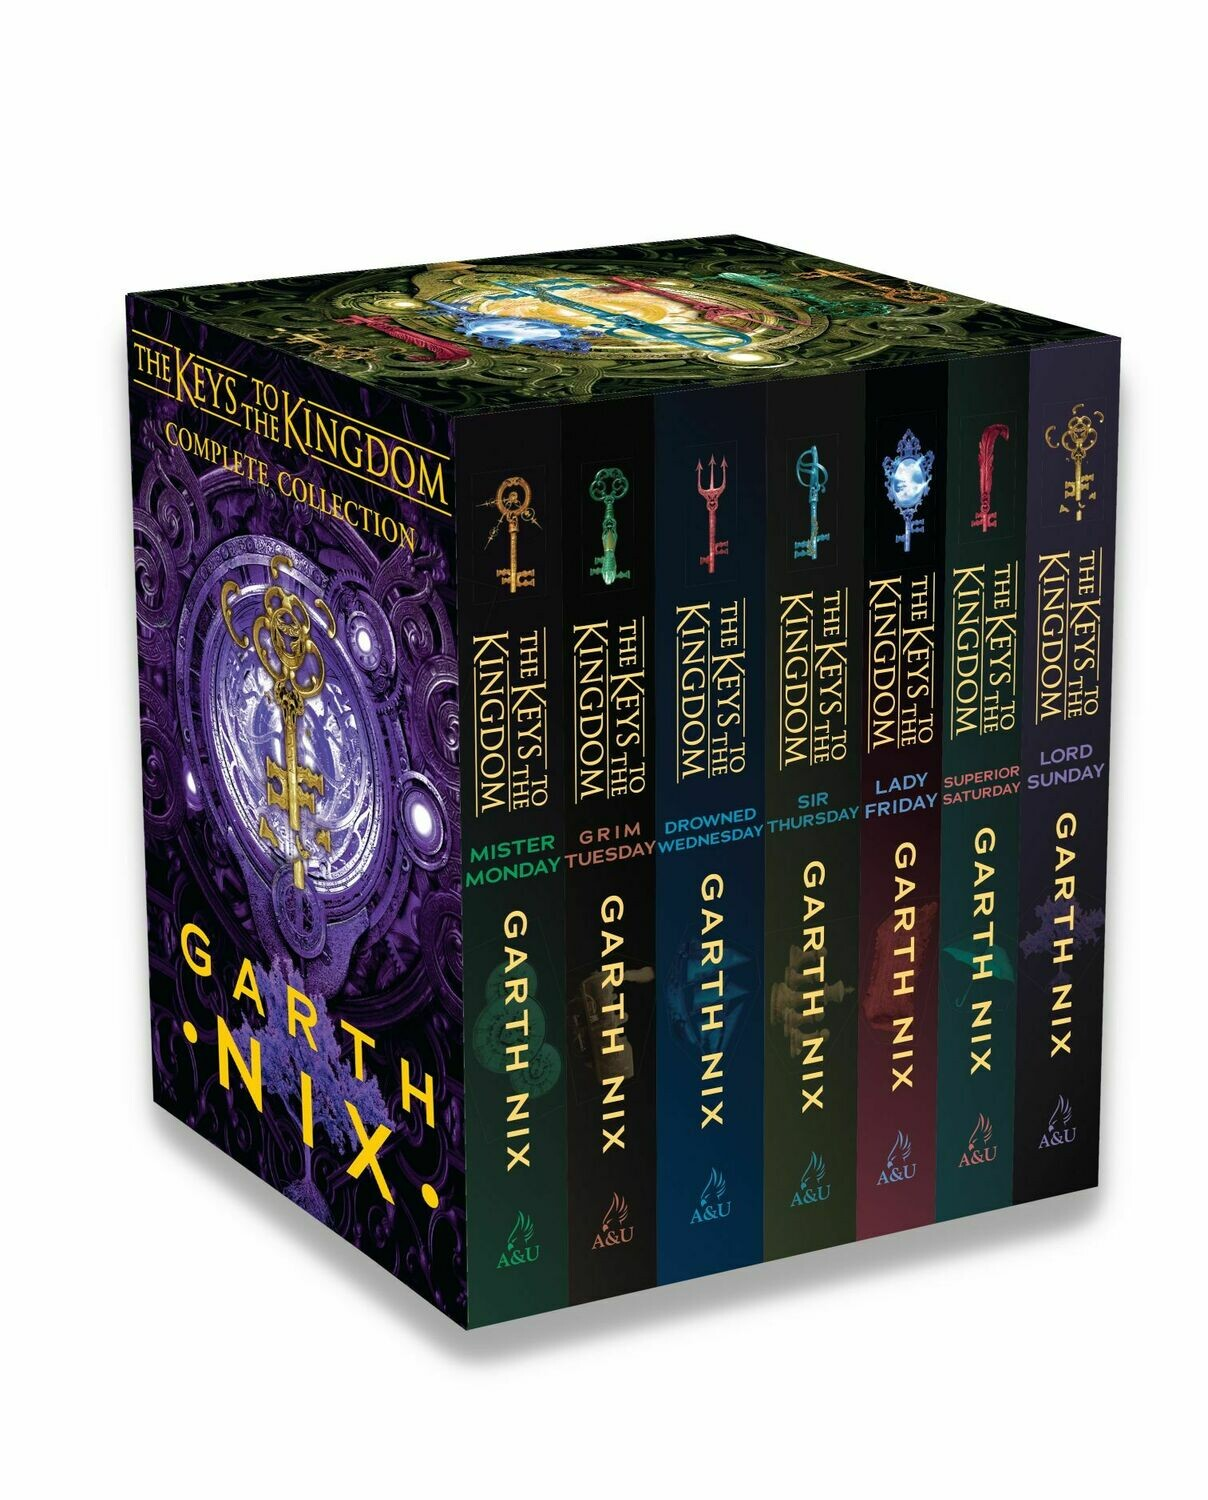 Keys to the Kingdom complete collection by Garth Nix